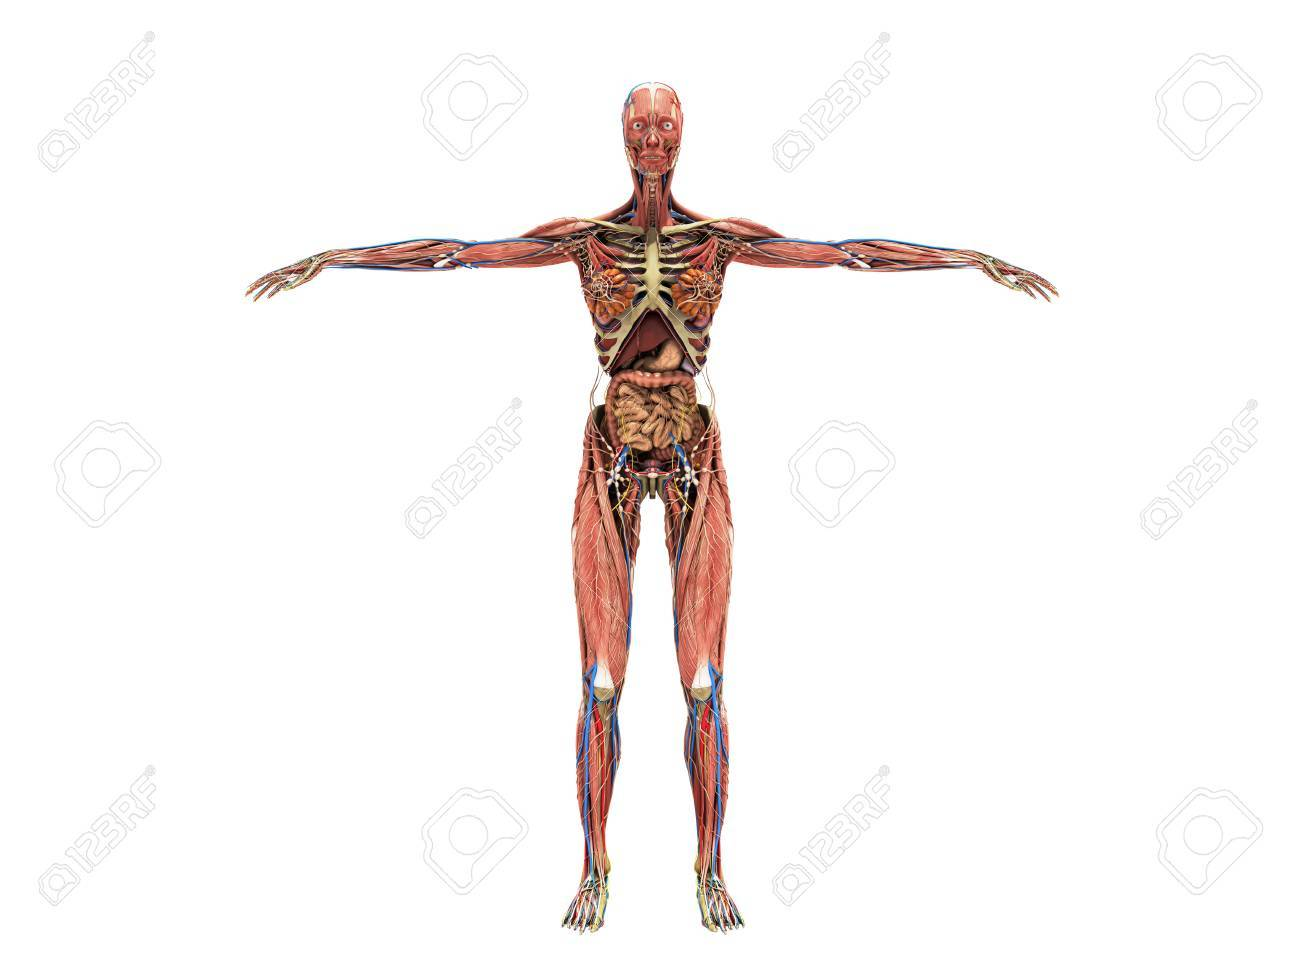 A Woman Body For Books On Anatomy 3d Render On White No Shadow Stock ...